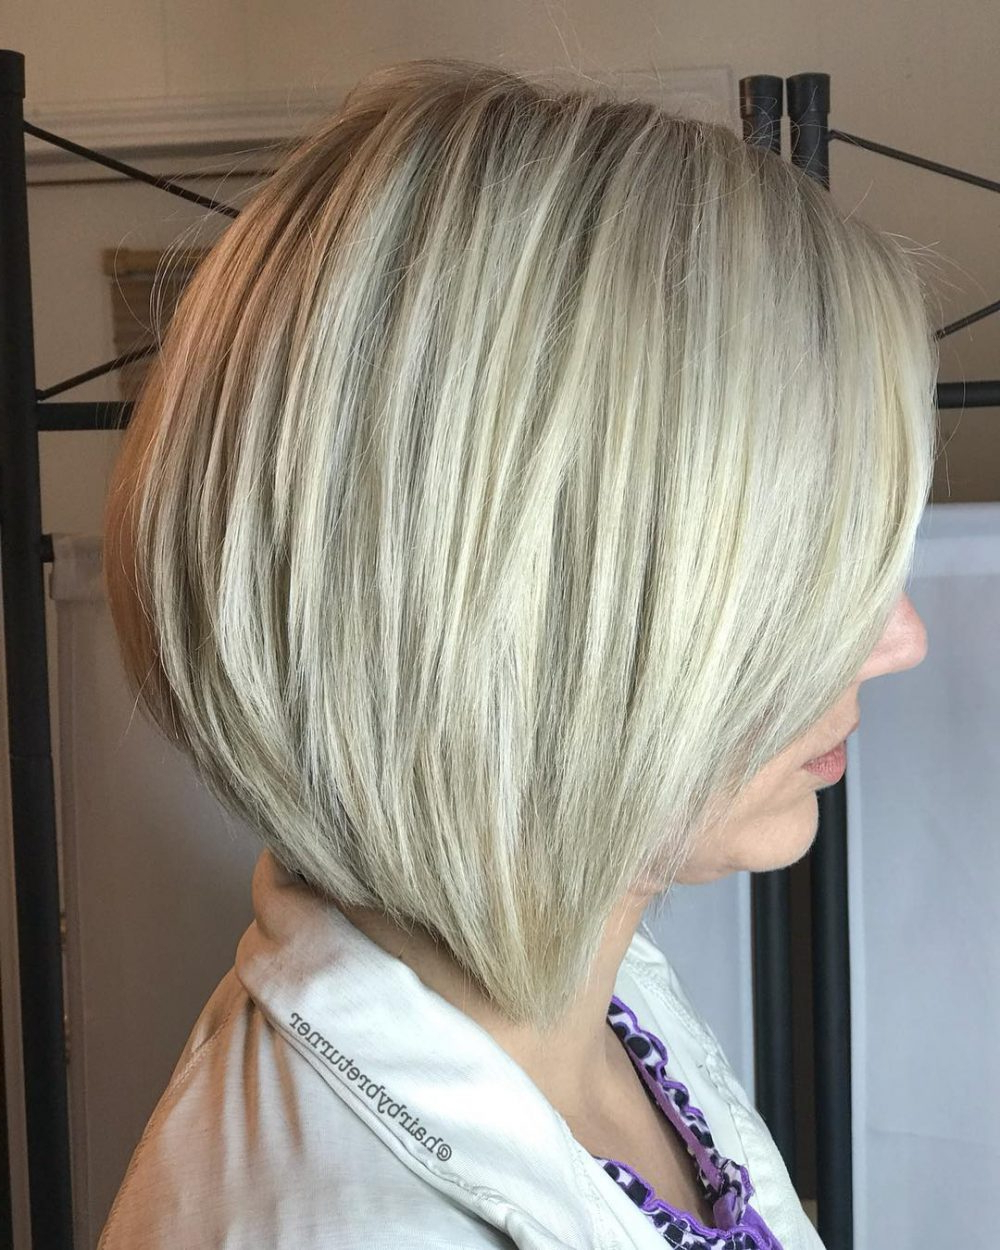 42 Sexiest Short Hairstyles For Women Over 40 In 2018 In Short Hairstyles For Women Over 40 With Thin Hair (View 14 of 25)